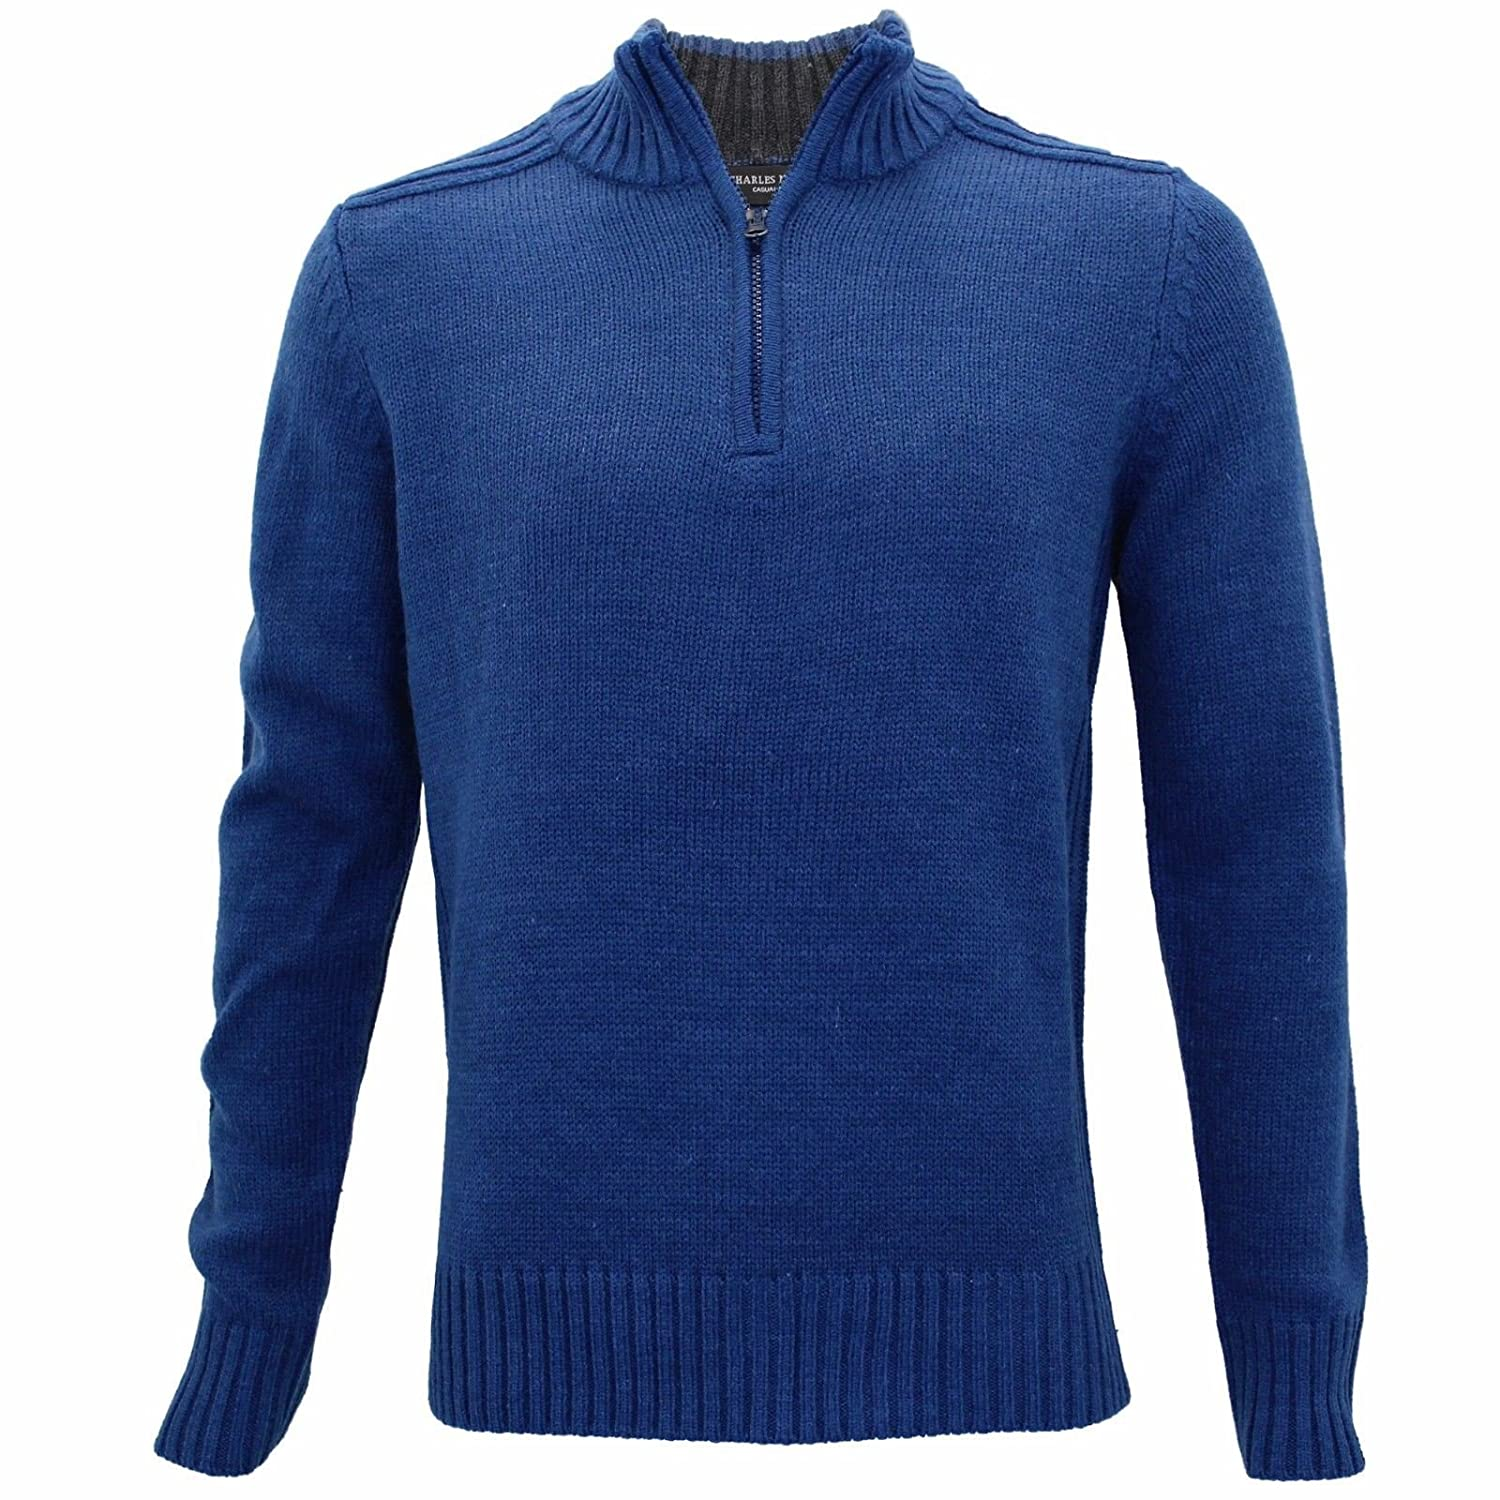 bce6d063e1fb2d Charles Norton Mens Funnel Neck Zip Up Sweatshirt Casual Knitted Pullover  Jumper  Amazon.co.uk  Clothing